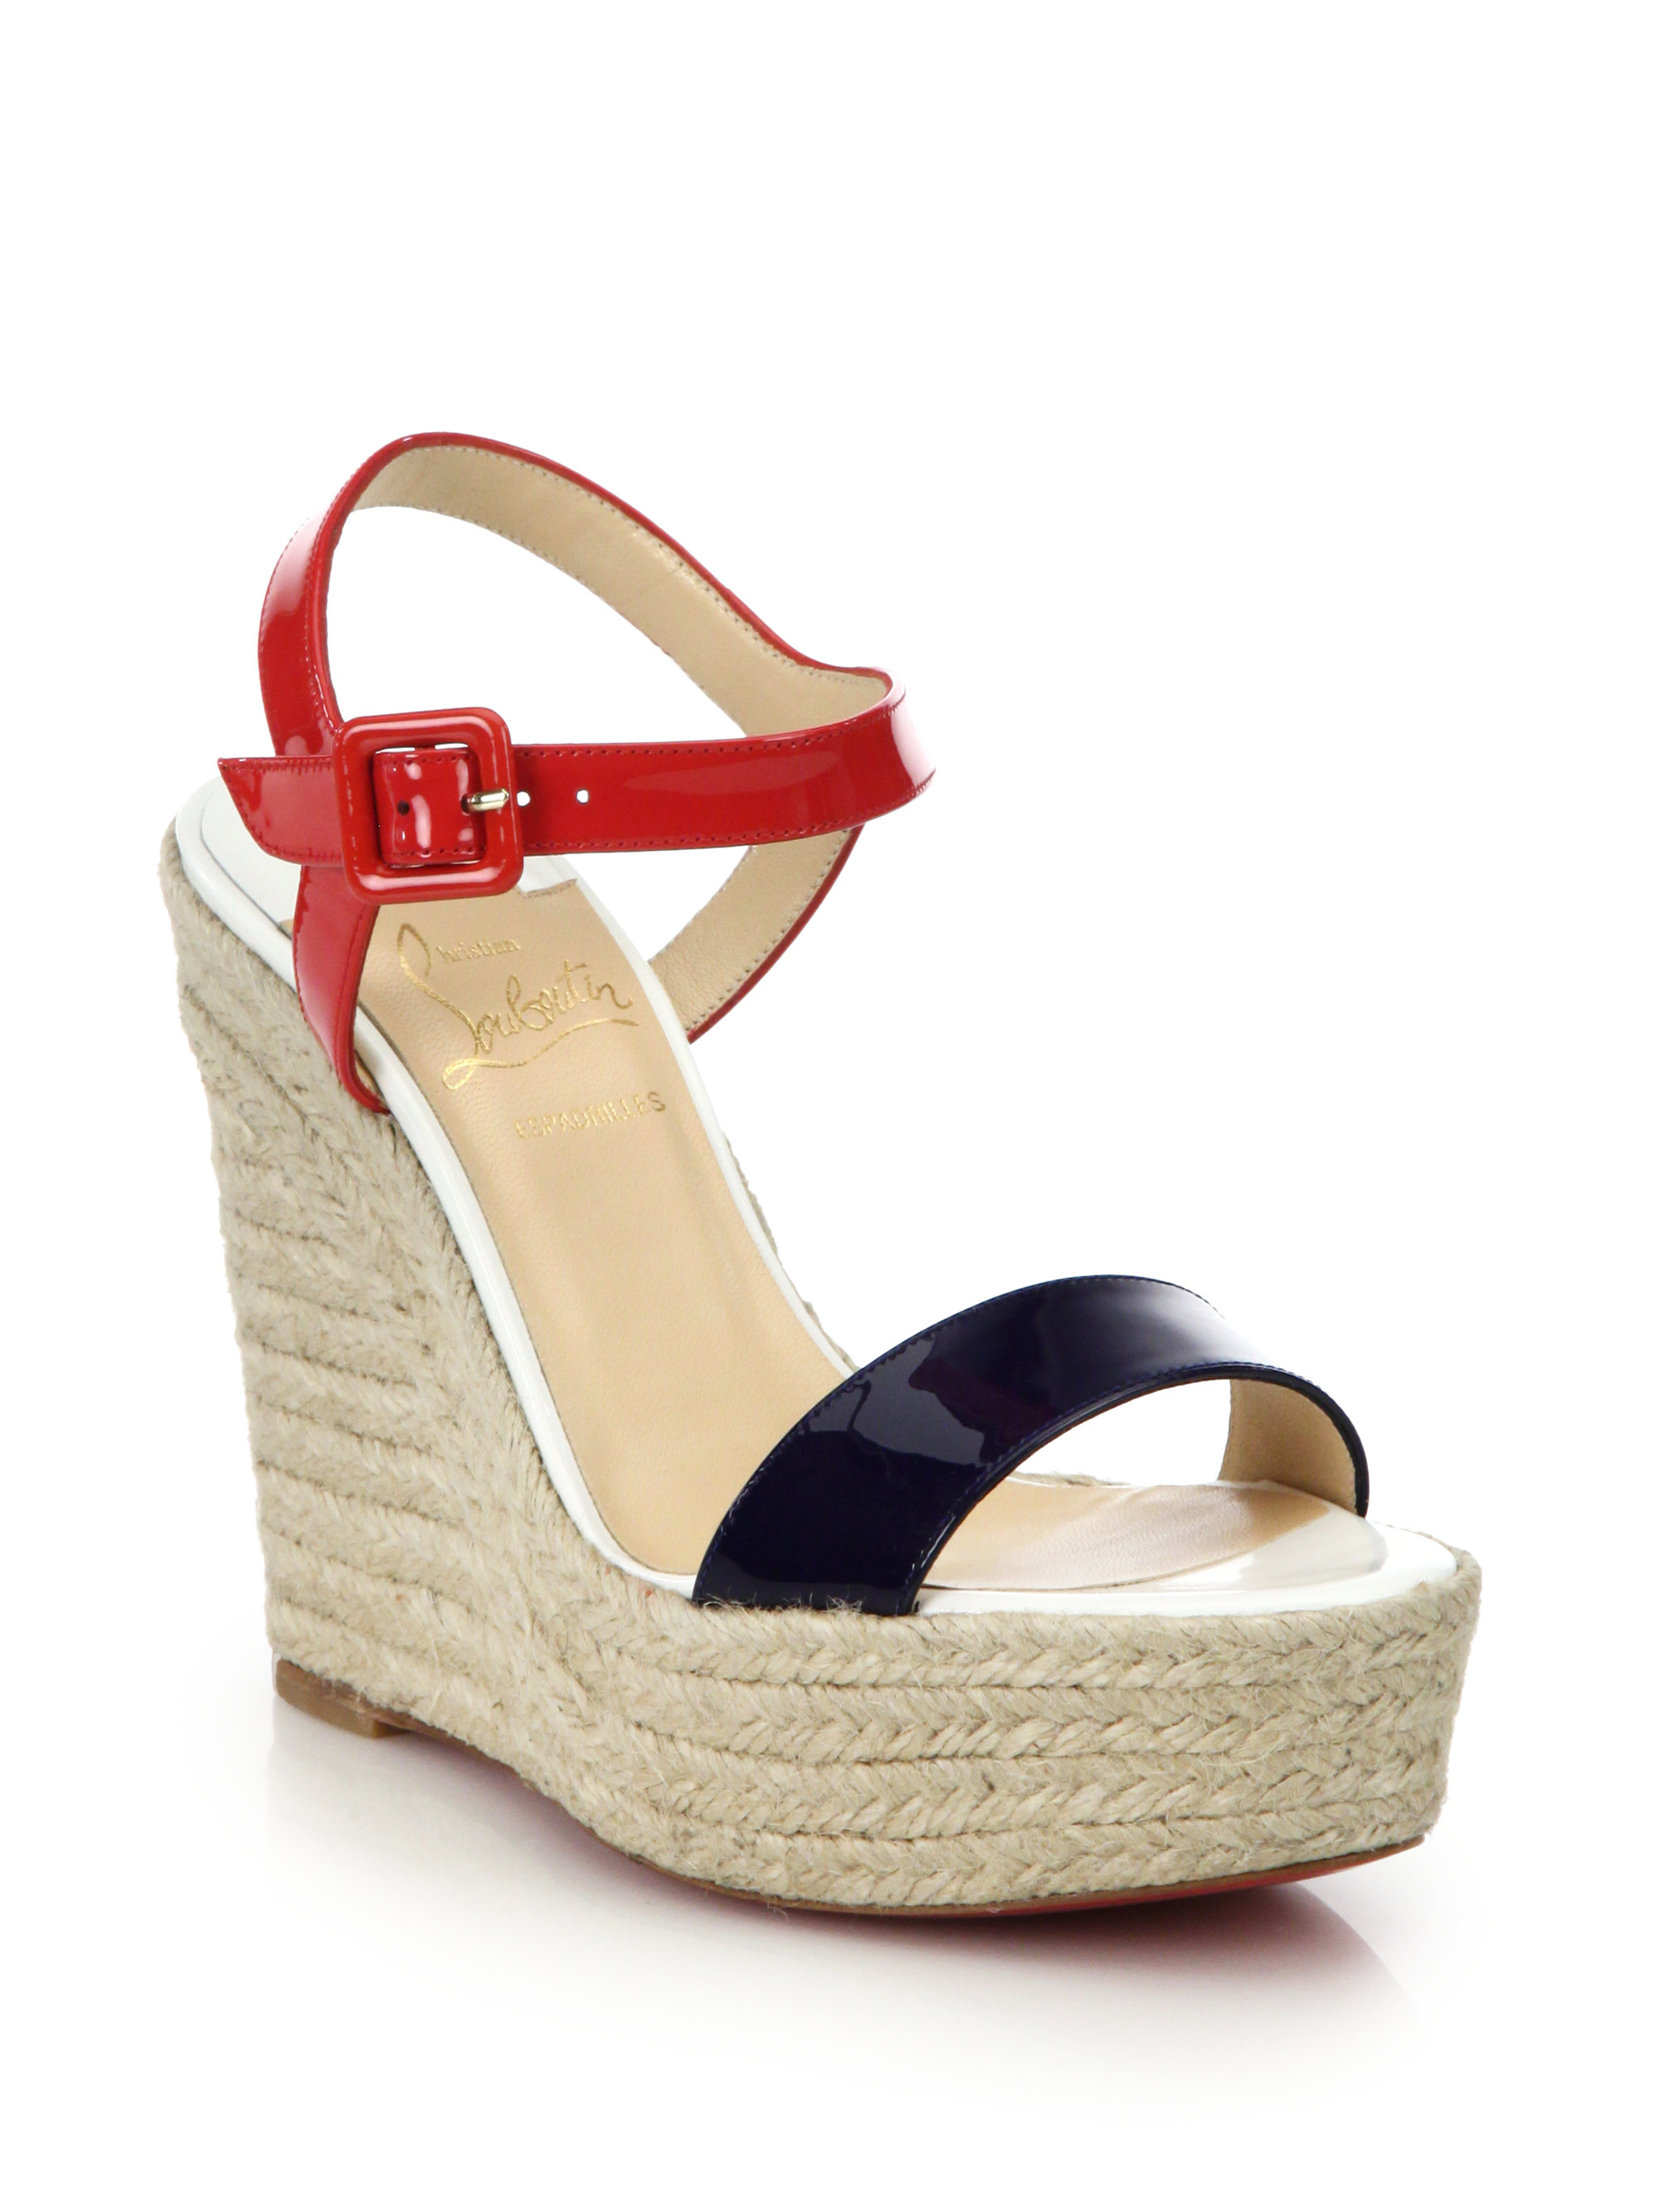 Christian louboutin Spachica Patent Leather Espadrille Wedge ...